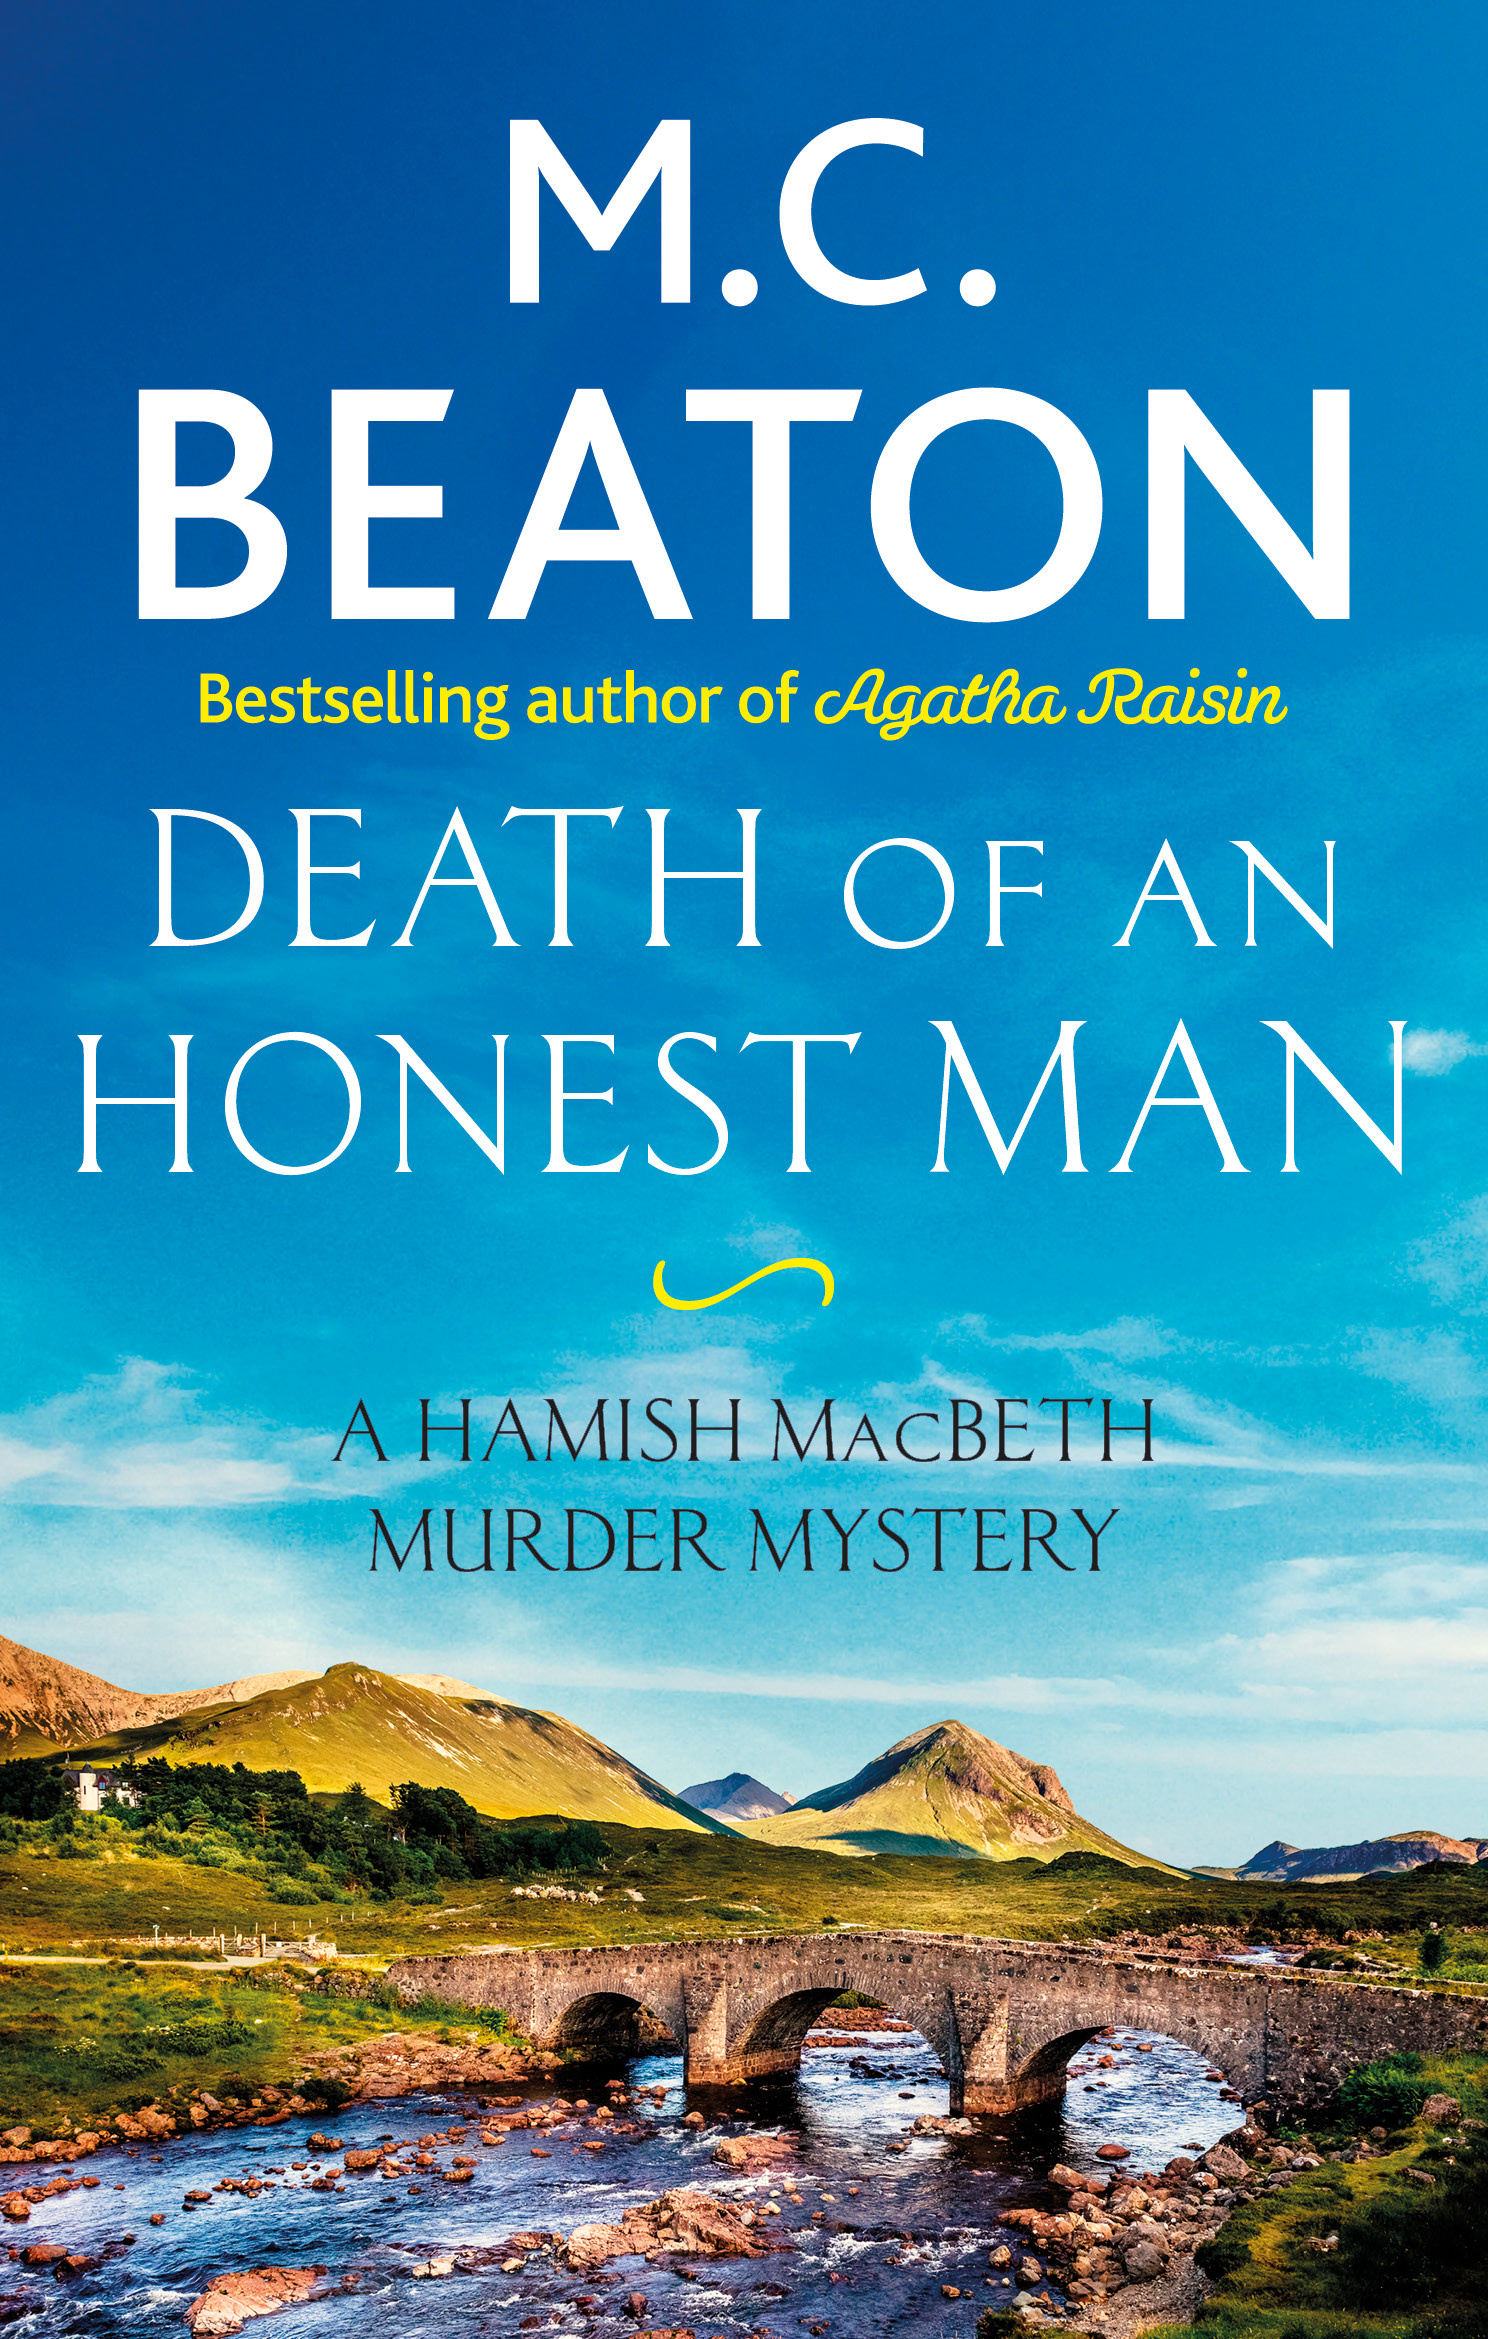 Death of an Honest Man (Hamish Macbeth)